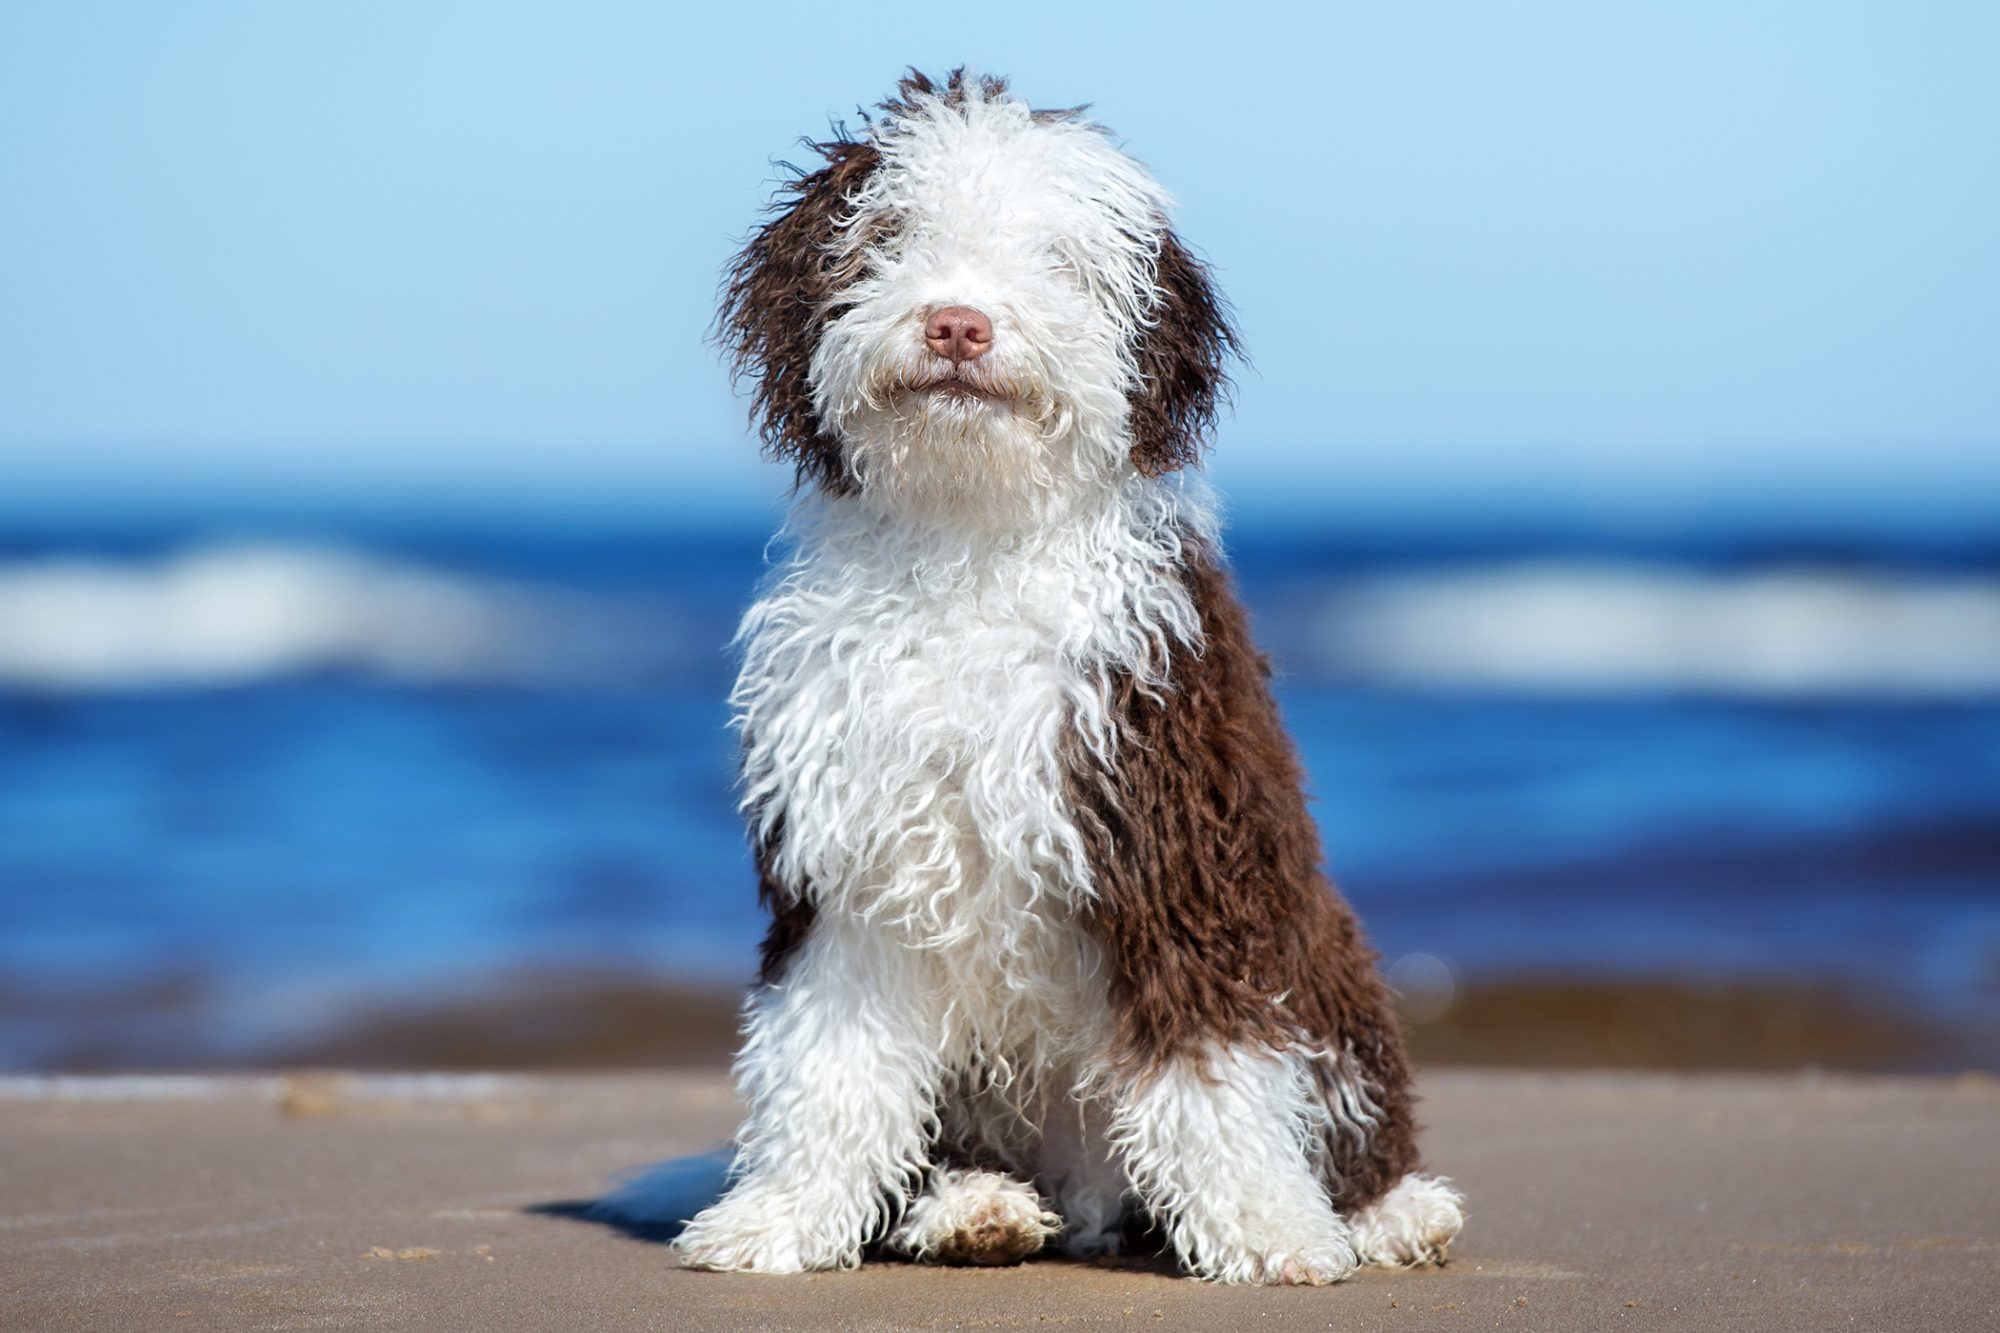 brown and white spanish water dog sitting on a beach